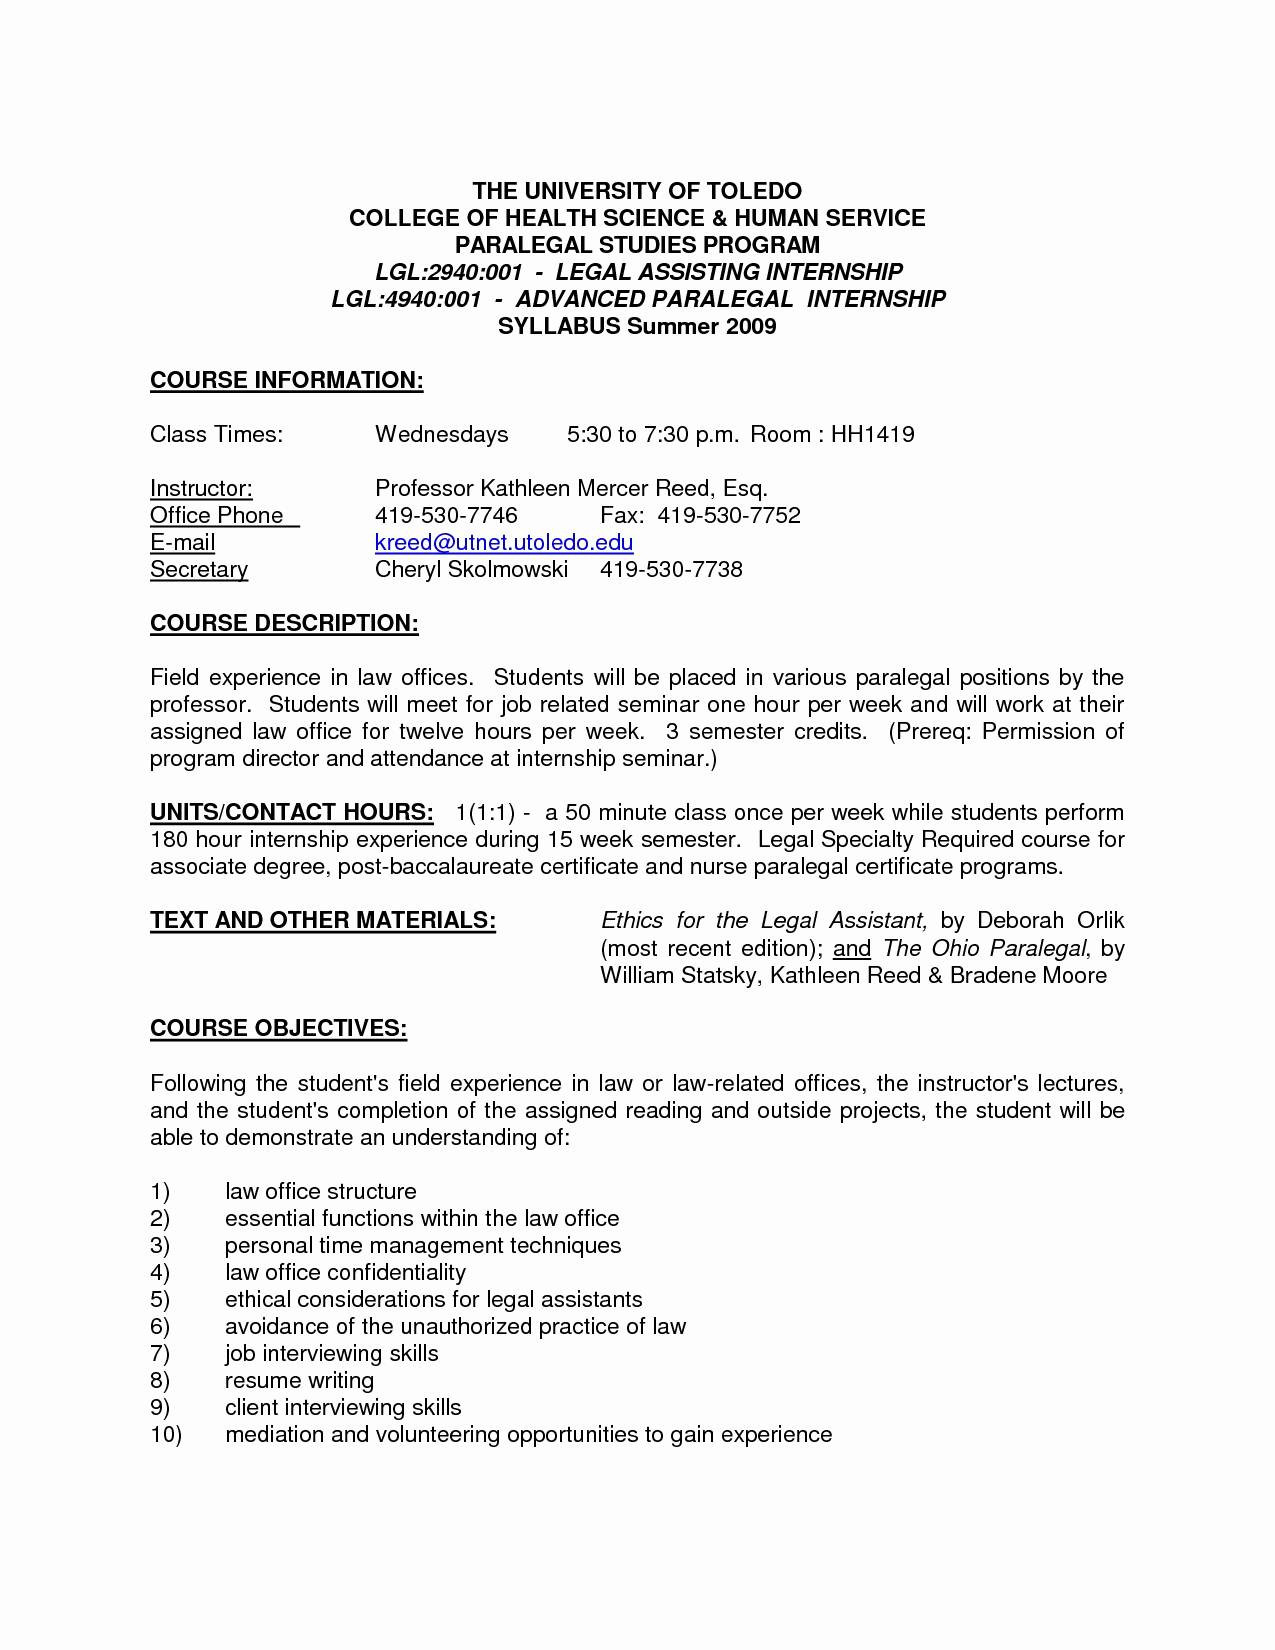 Law Firm Letter Template - Law Firm Cover Letter Fresh Sample Legal Cover Letter Experienced